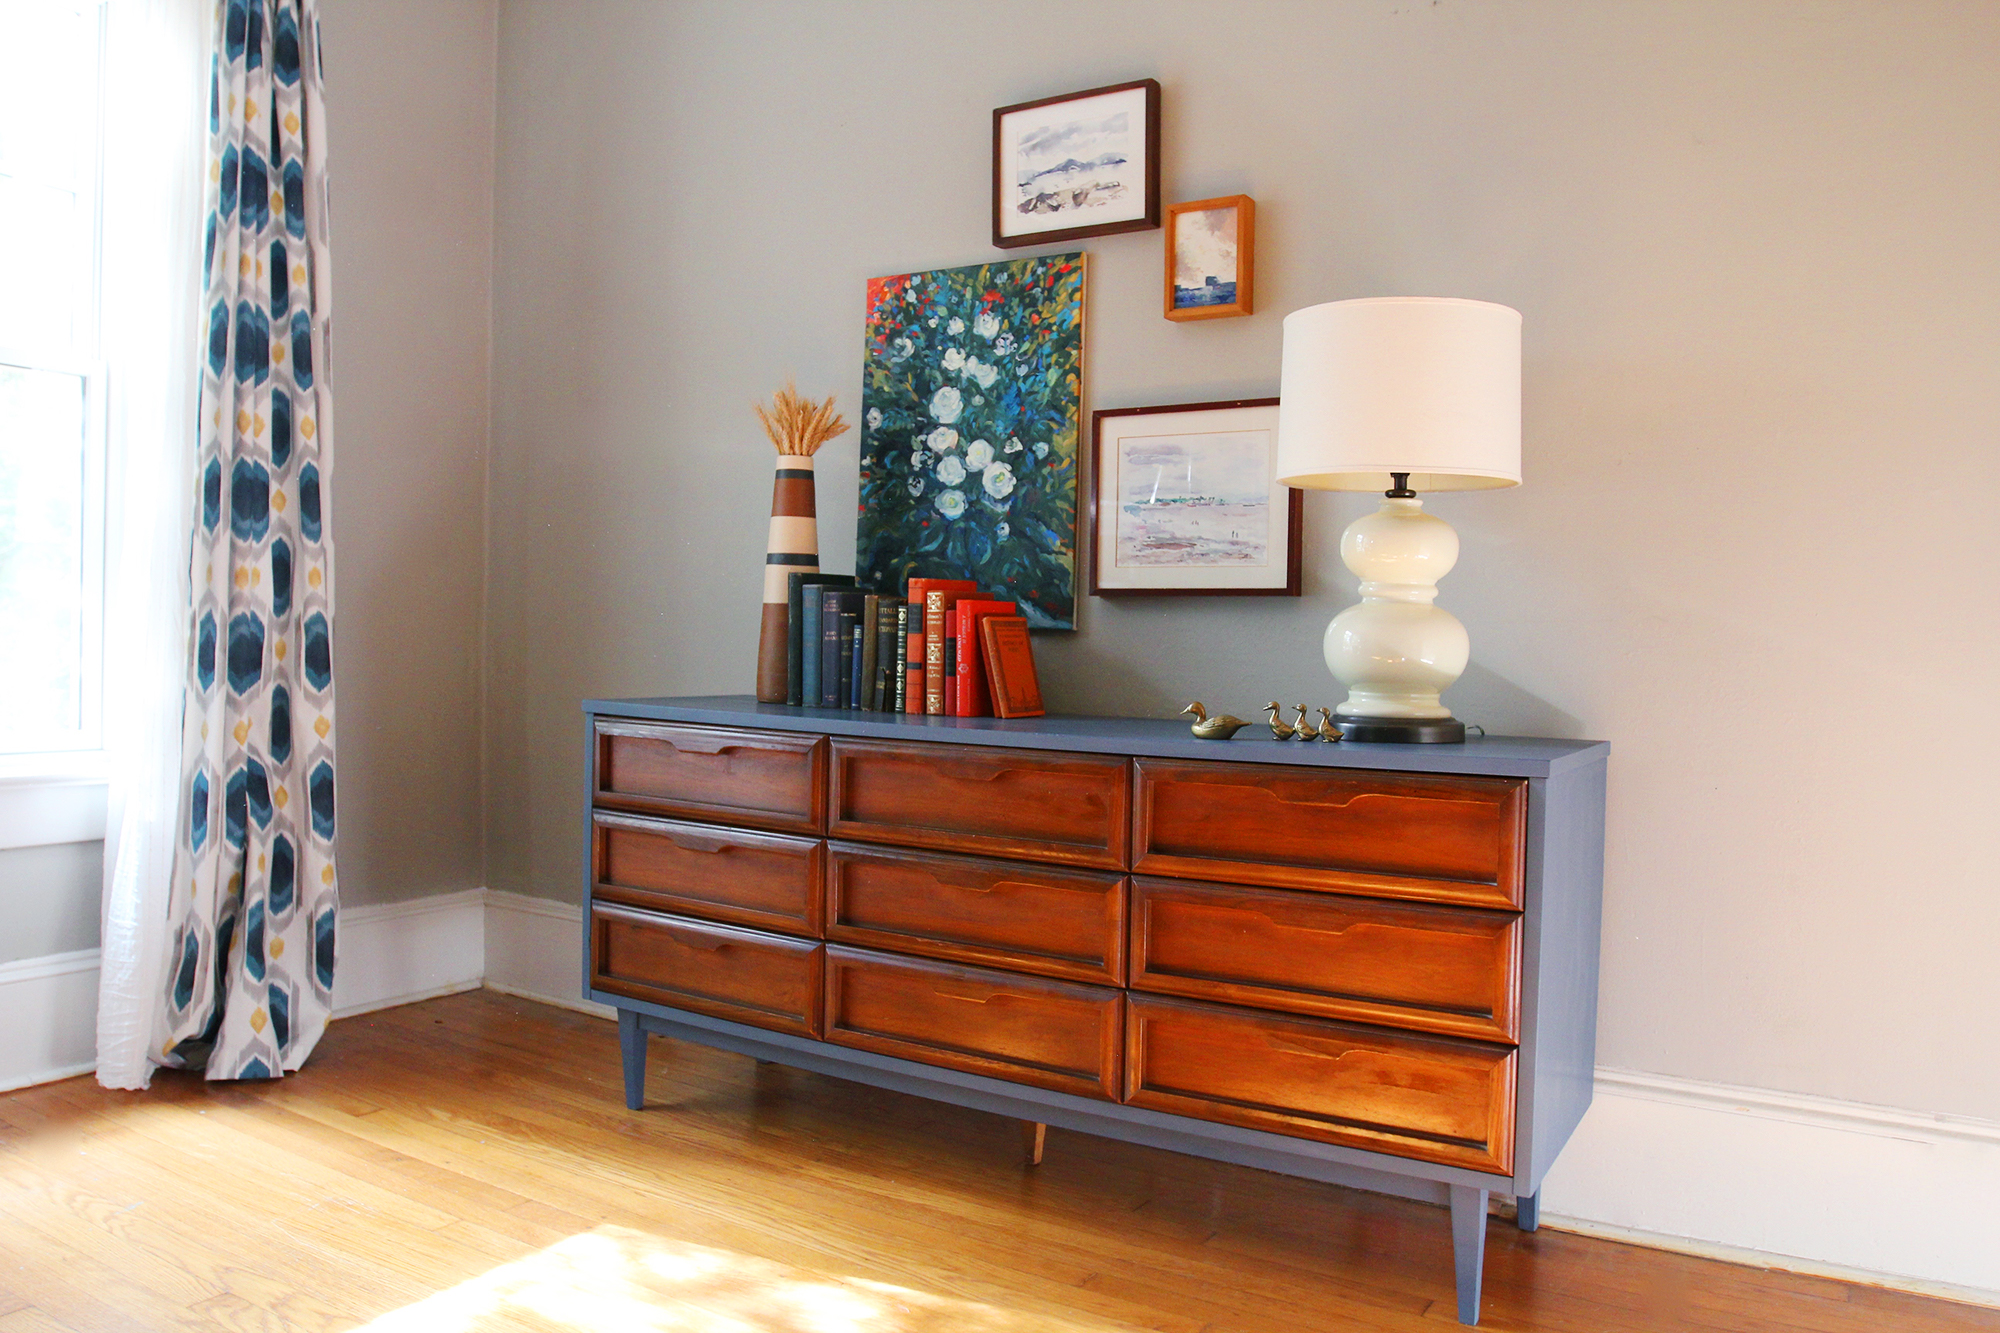 jo-torrijos-a-simpler-design-atlanta-painted-furniture-annie-sloan-aubusson-blue-french-linen-mid-century-painted-dresser-13.jpg